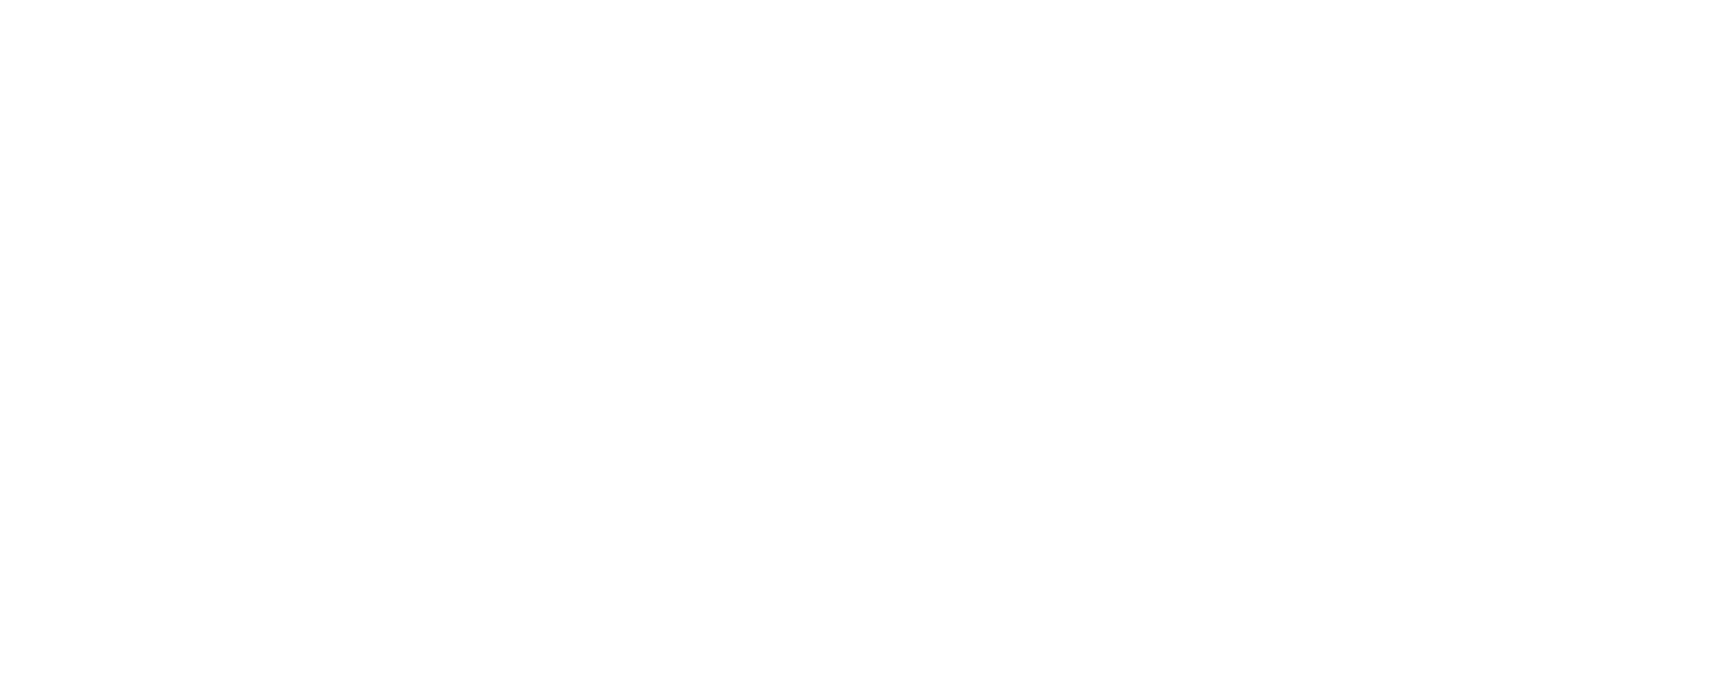 Welcome to Union Park Header Text